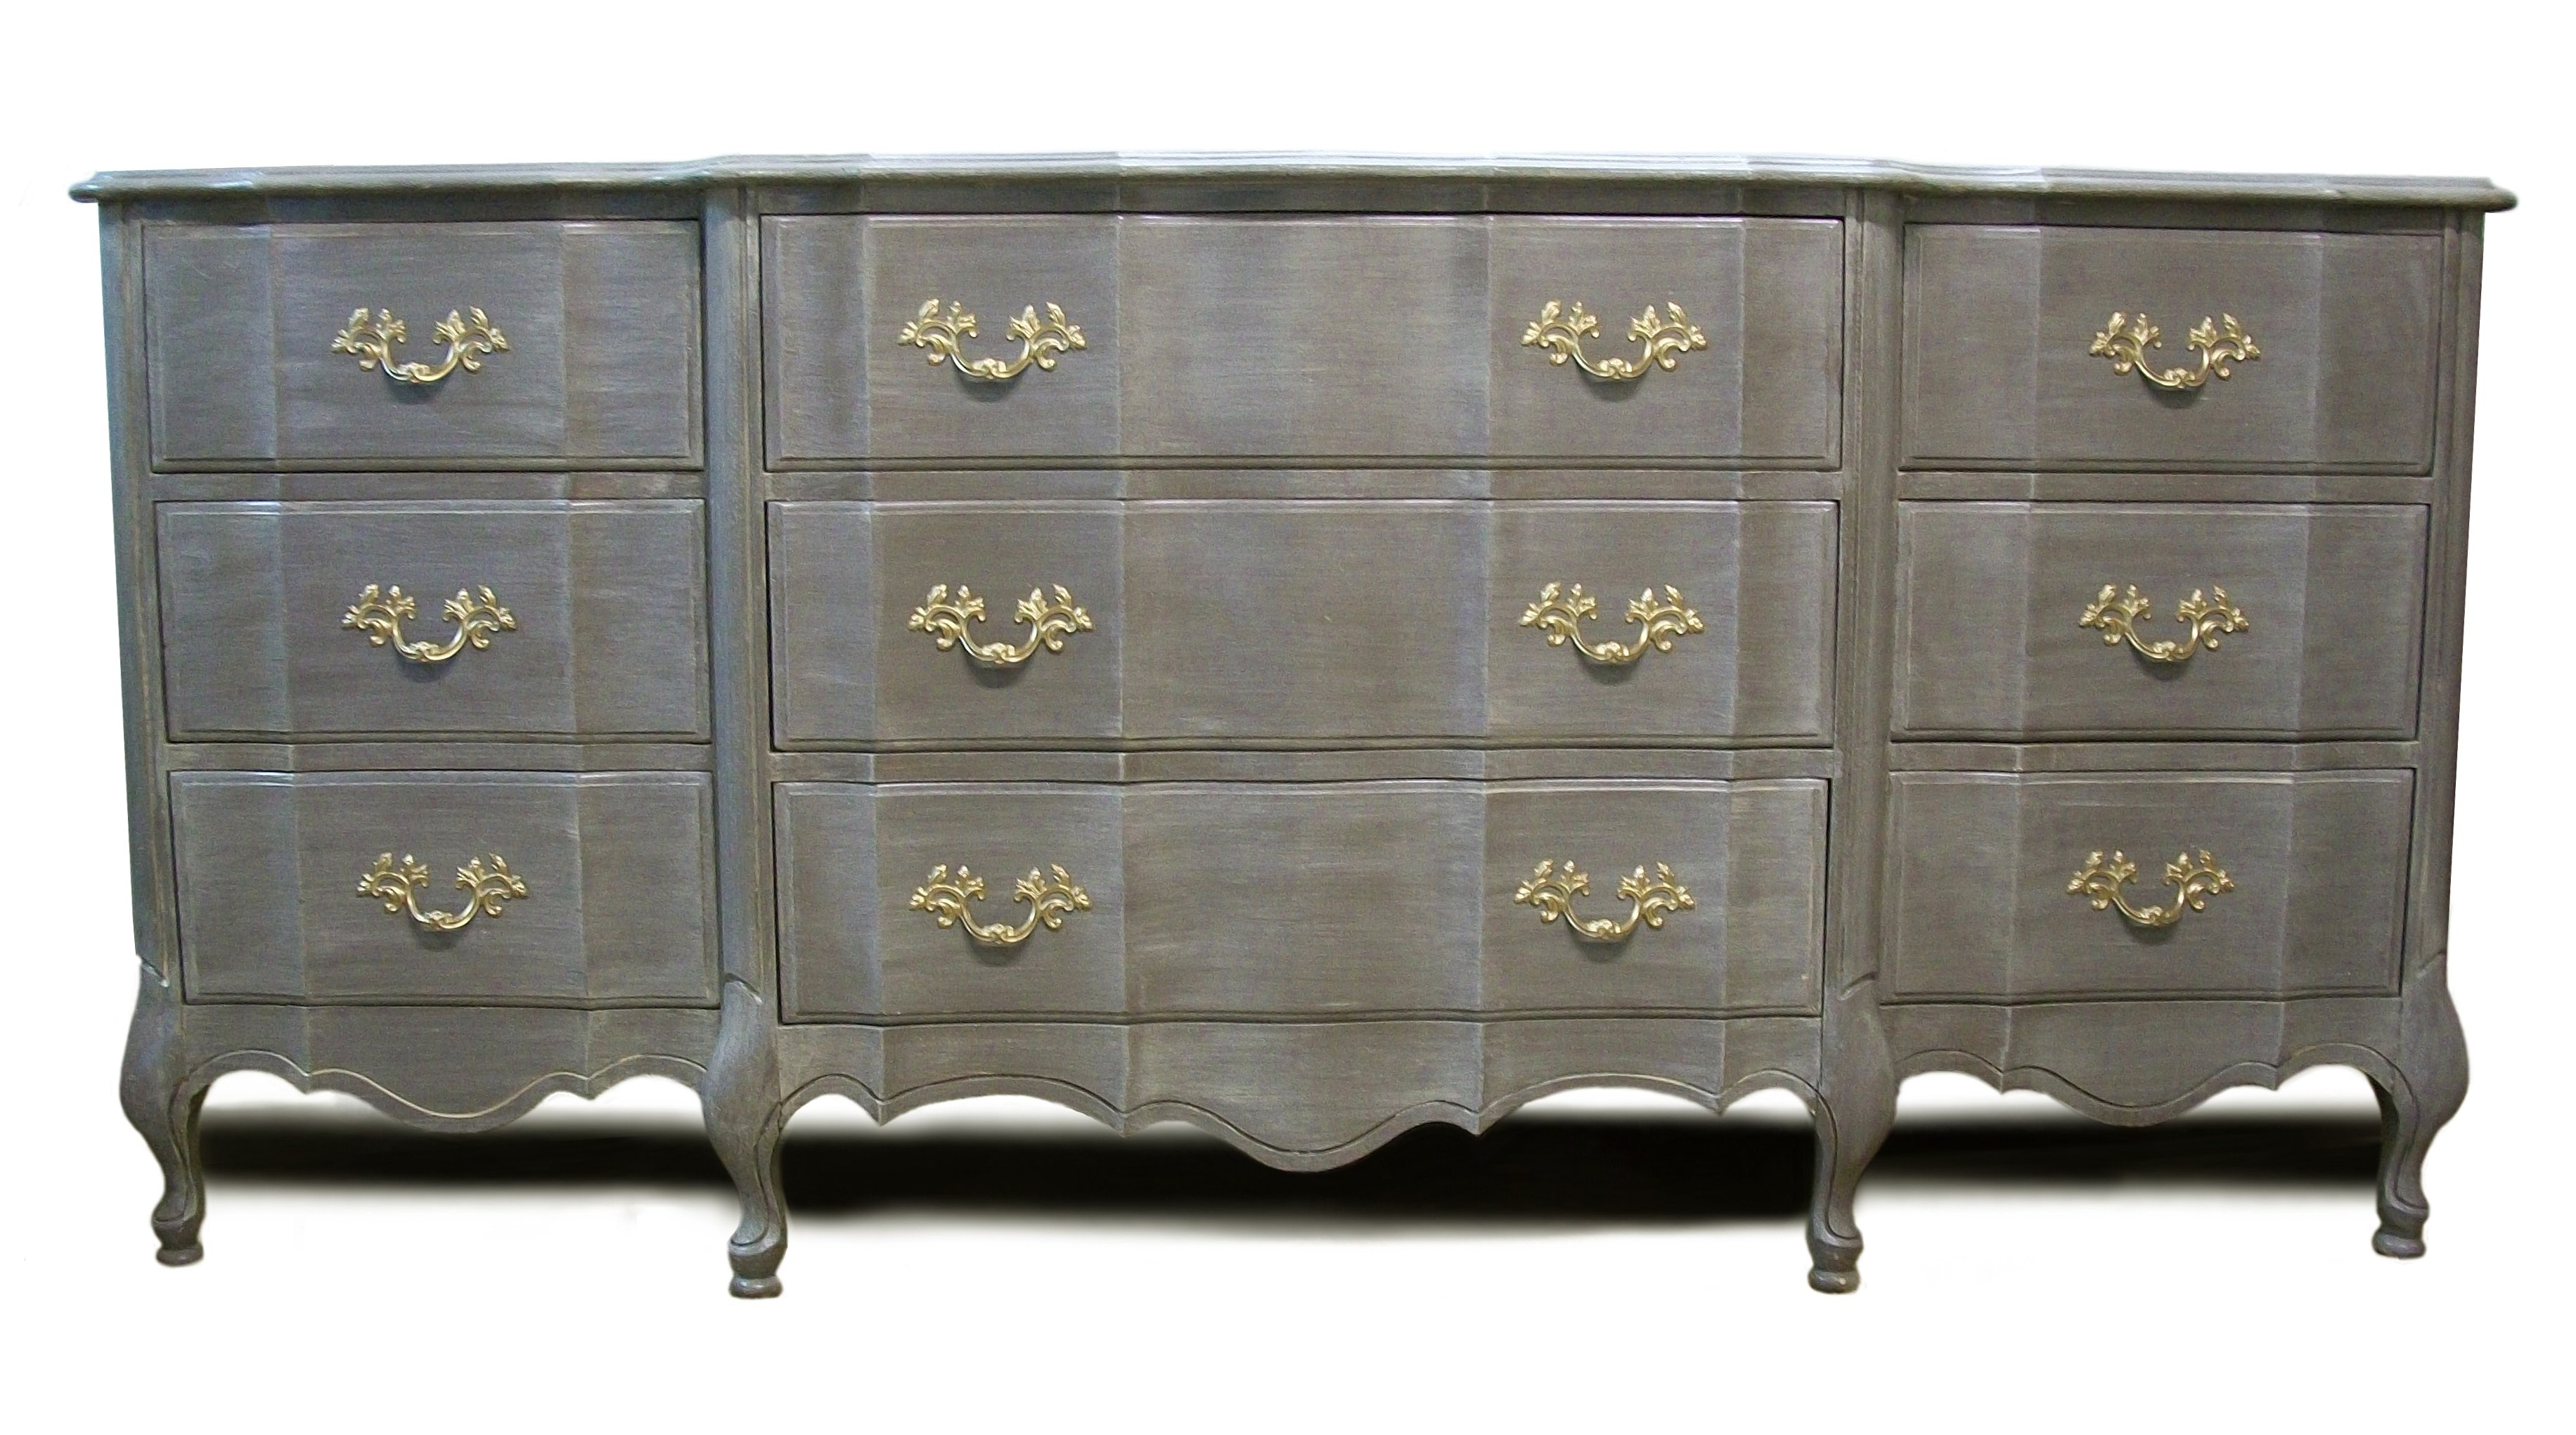 French furniture - Another Beautiful